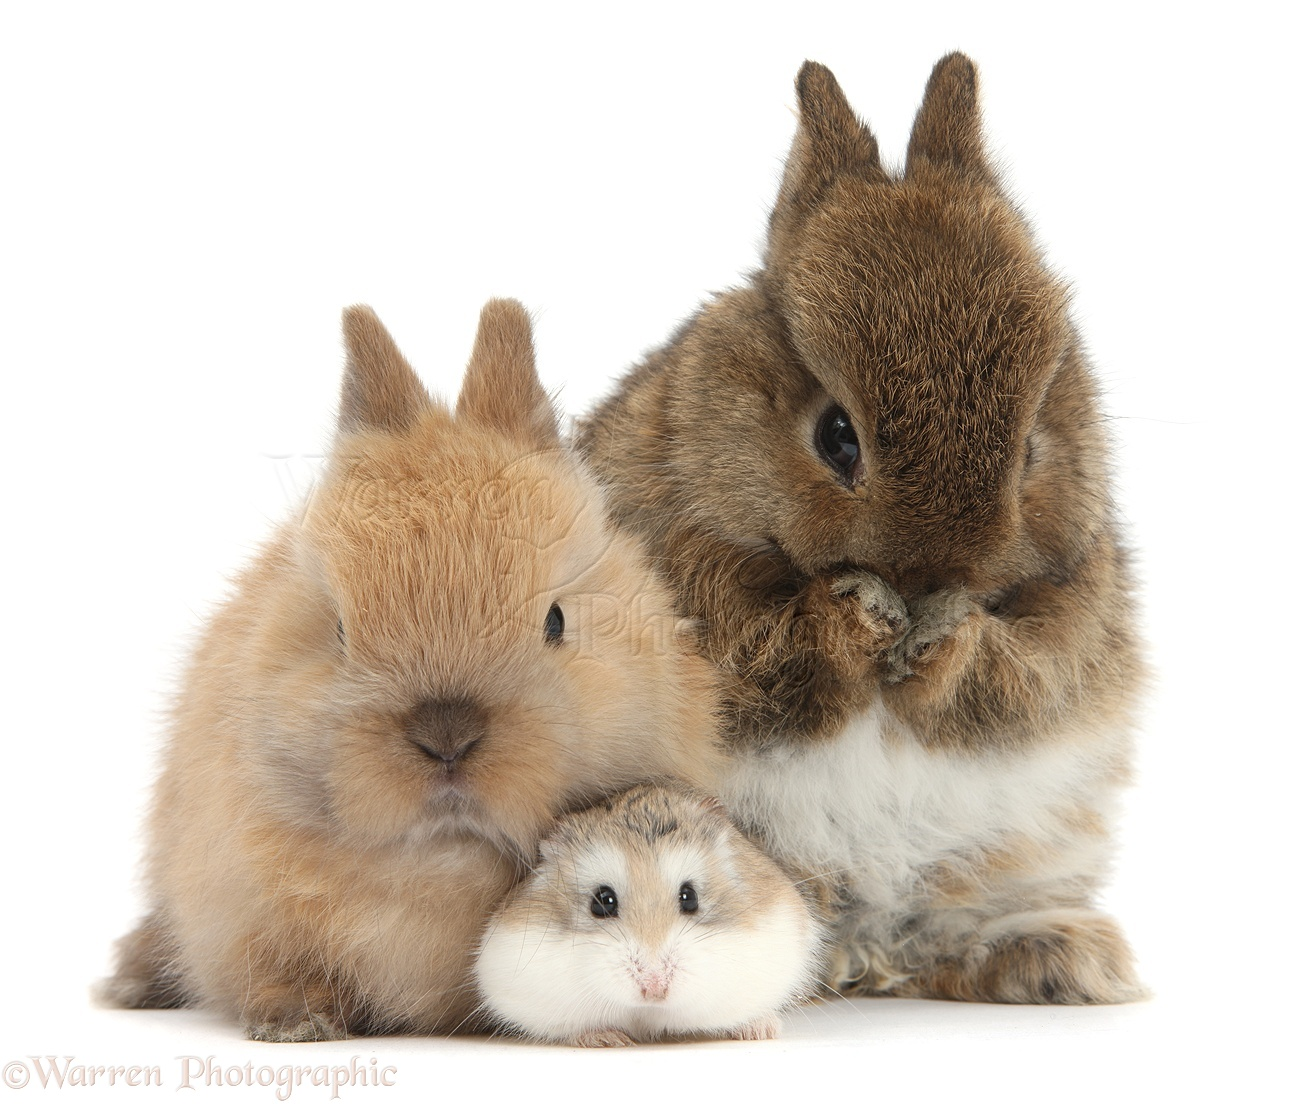 Roborovski Hamster with cute baby bunnies photo WP39700 - photo#16